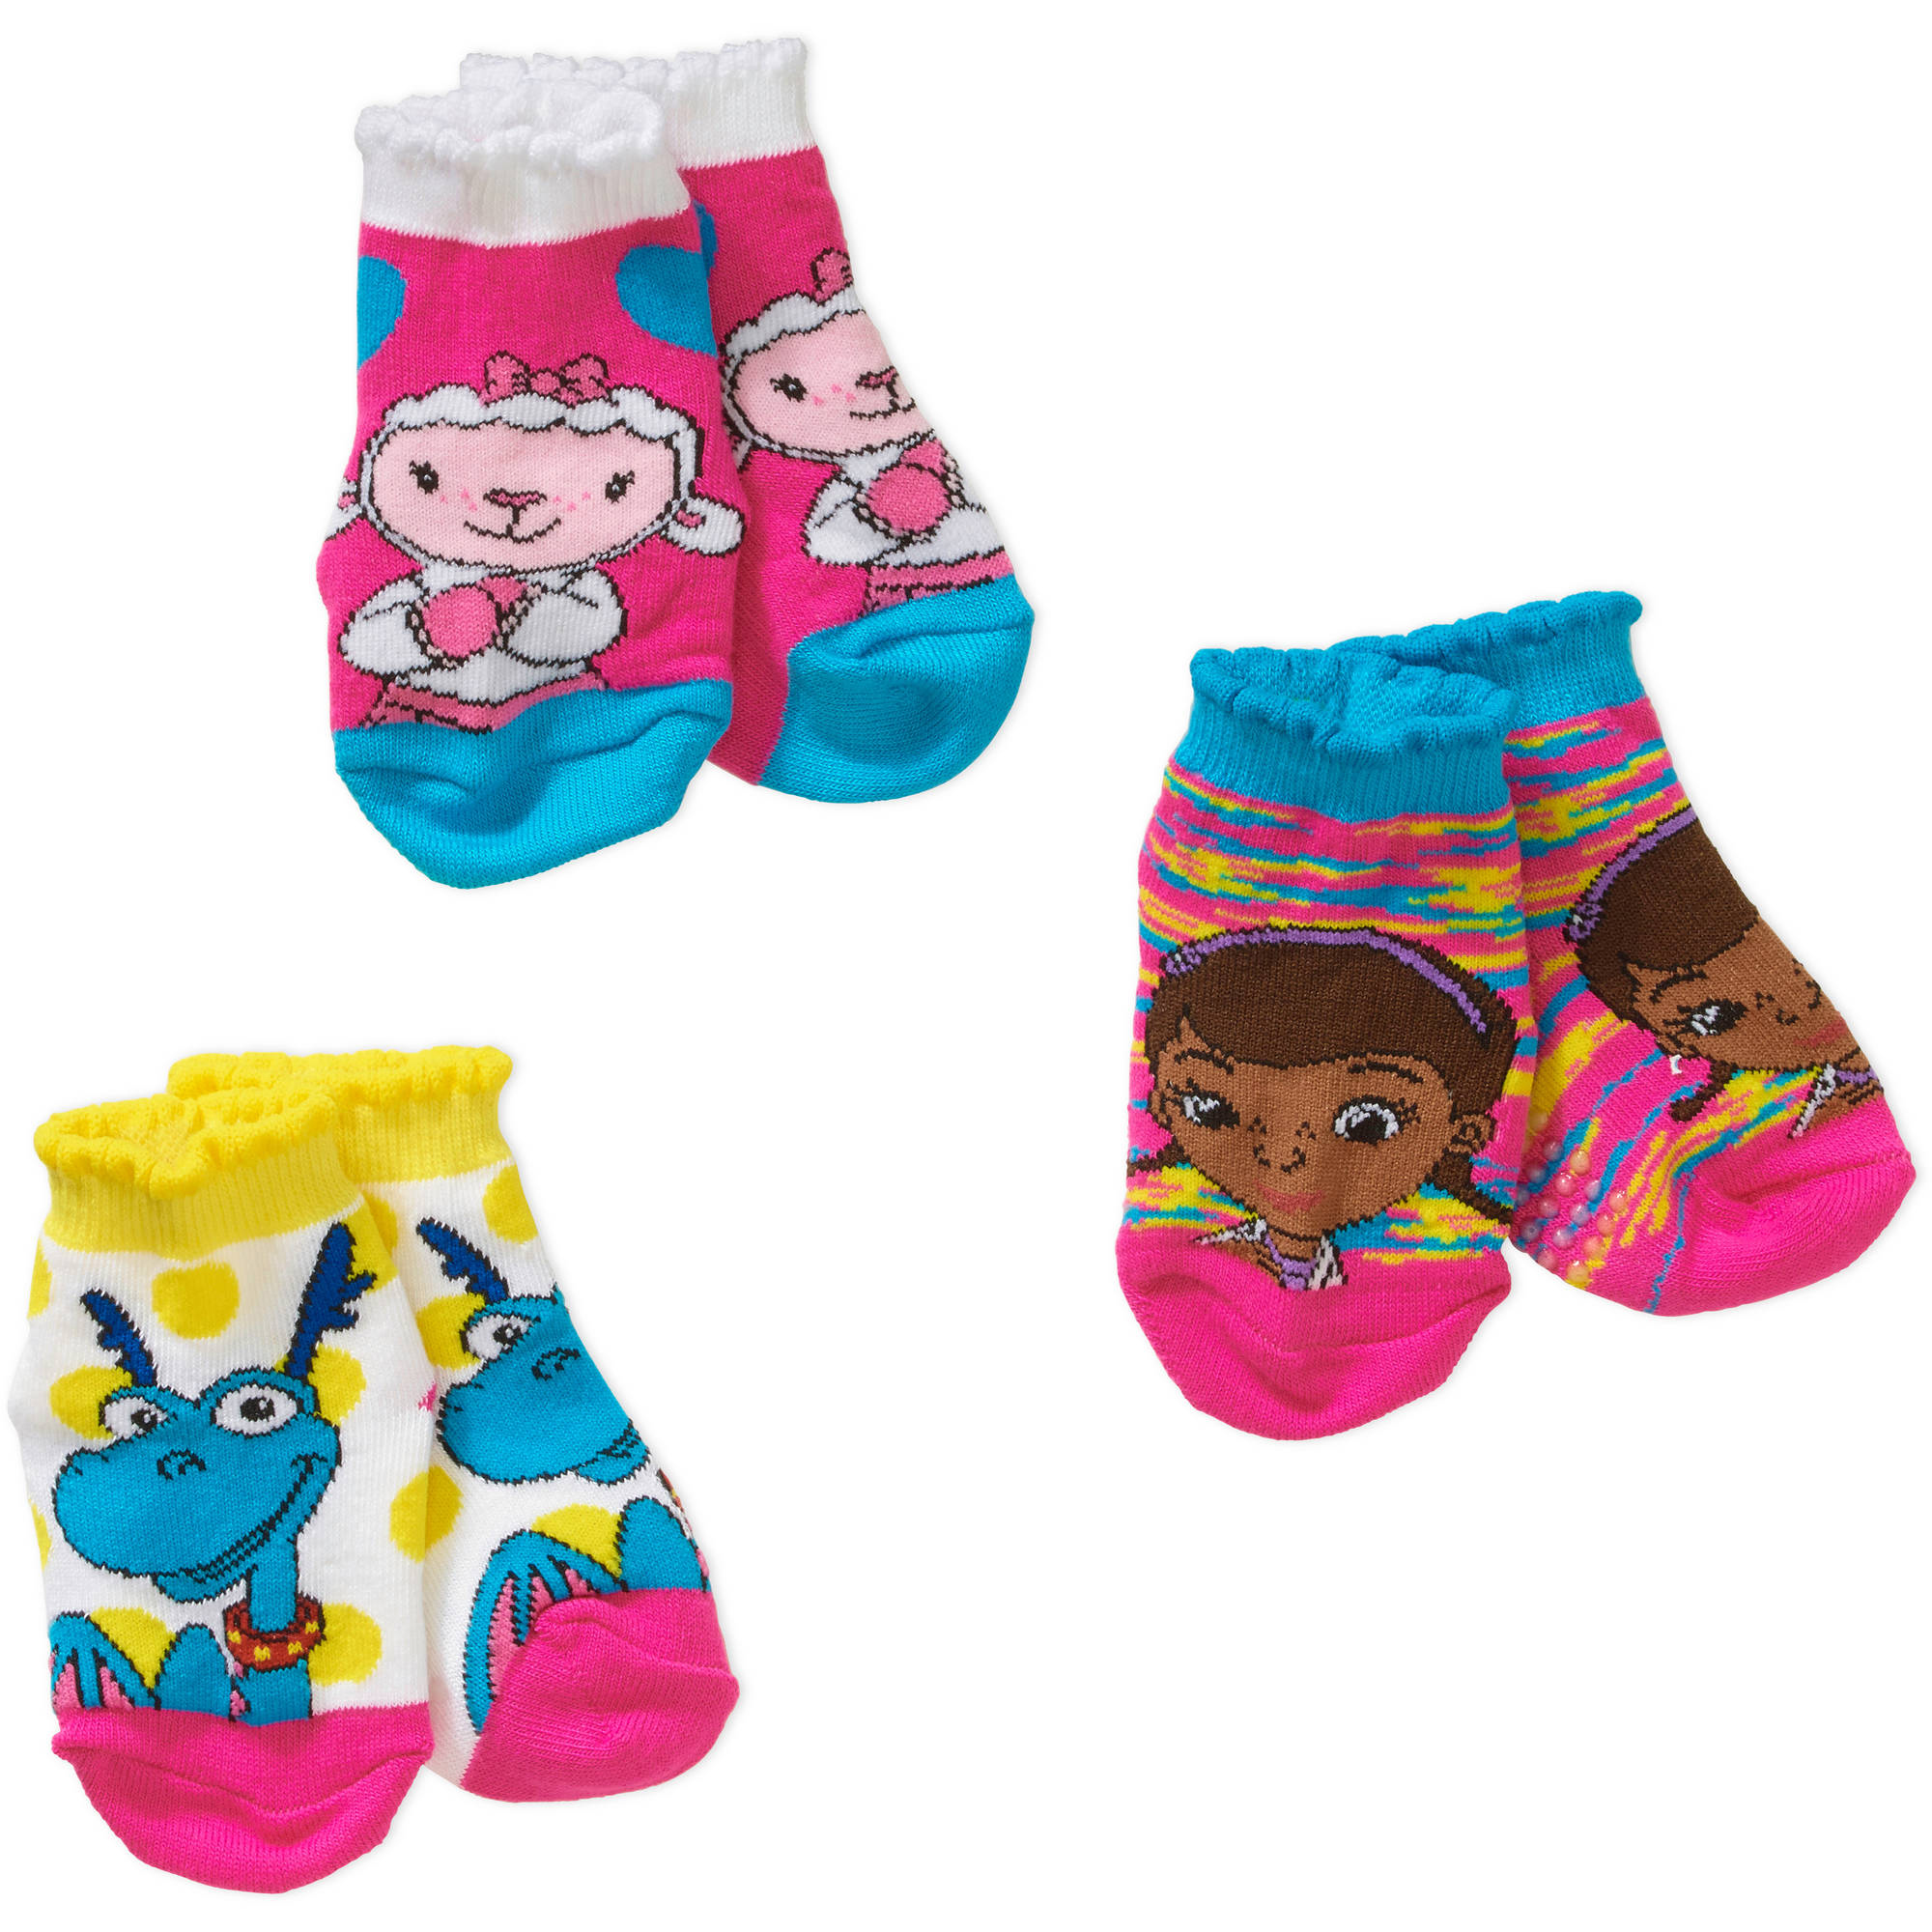 Toddler Girl Quarter Socks, 3-Pack